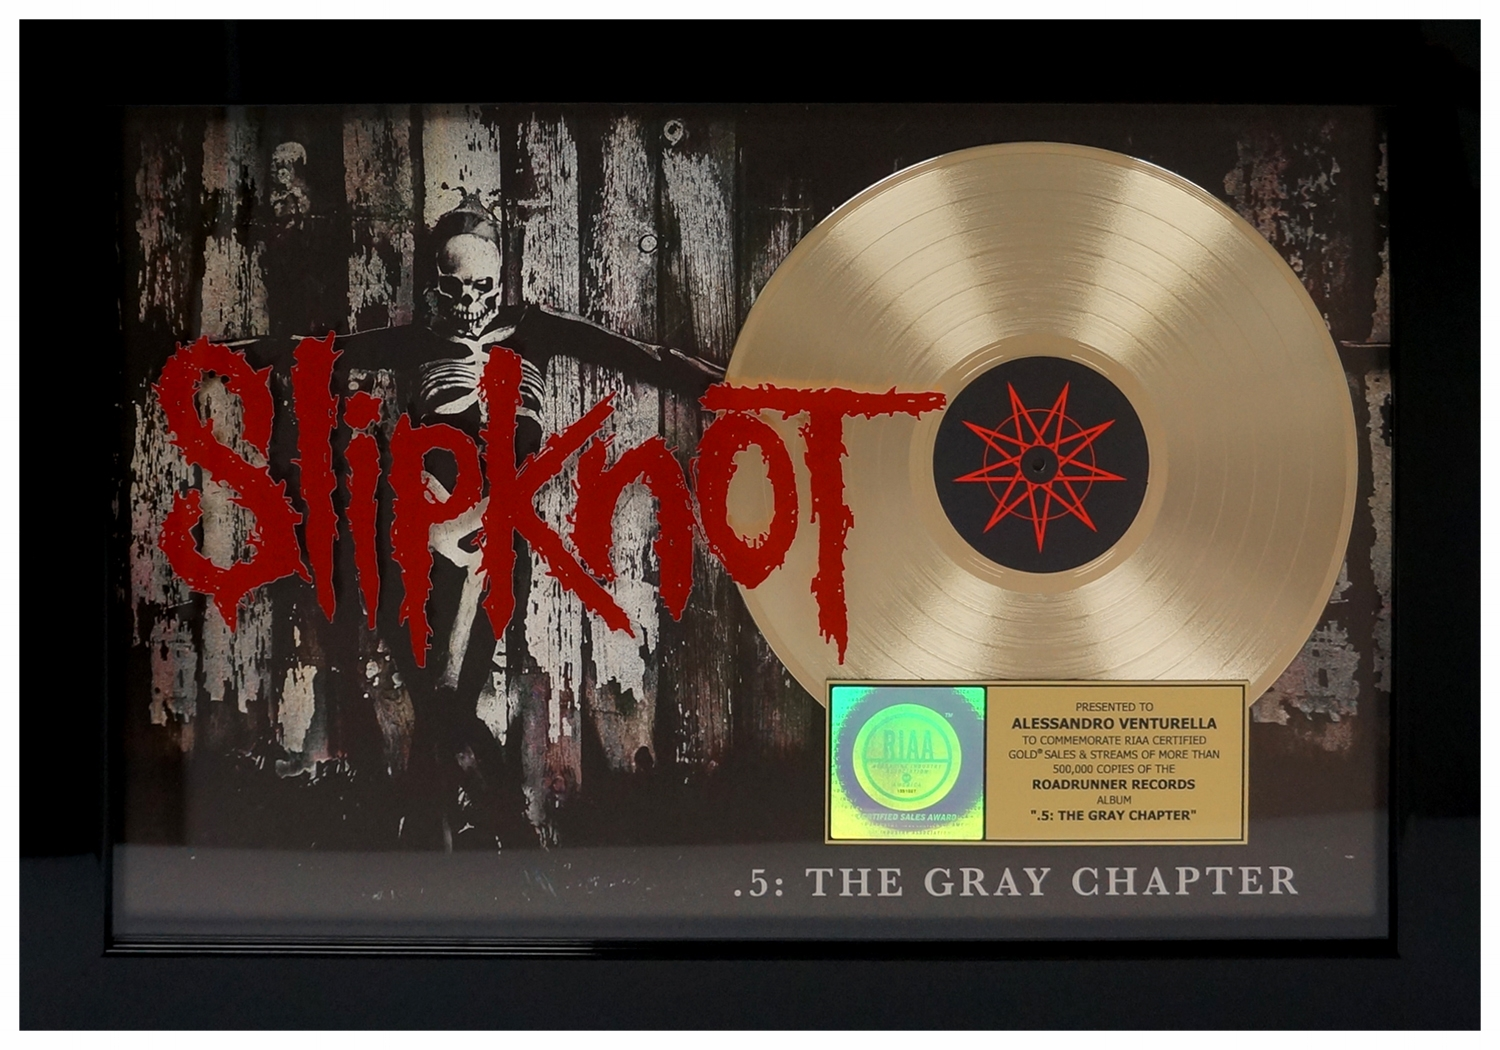 Slipknot Gray Chapter award photo.jpg